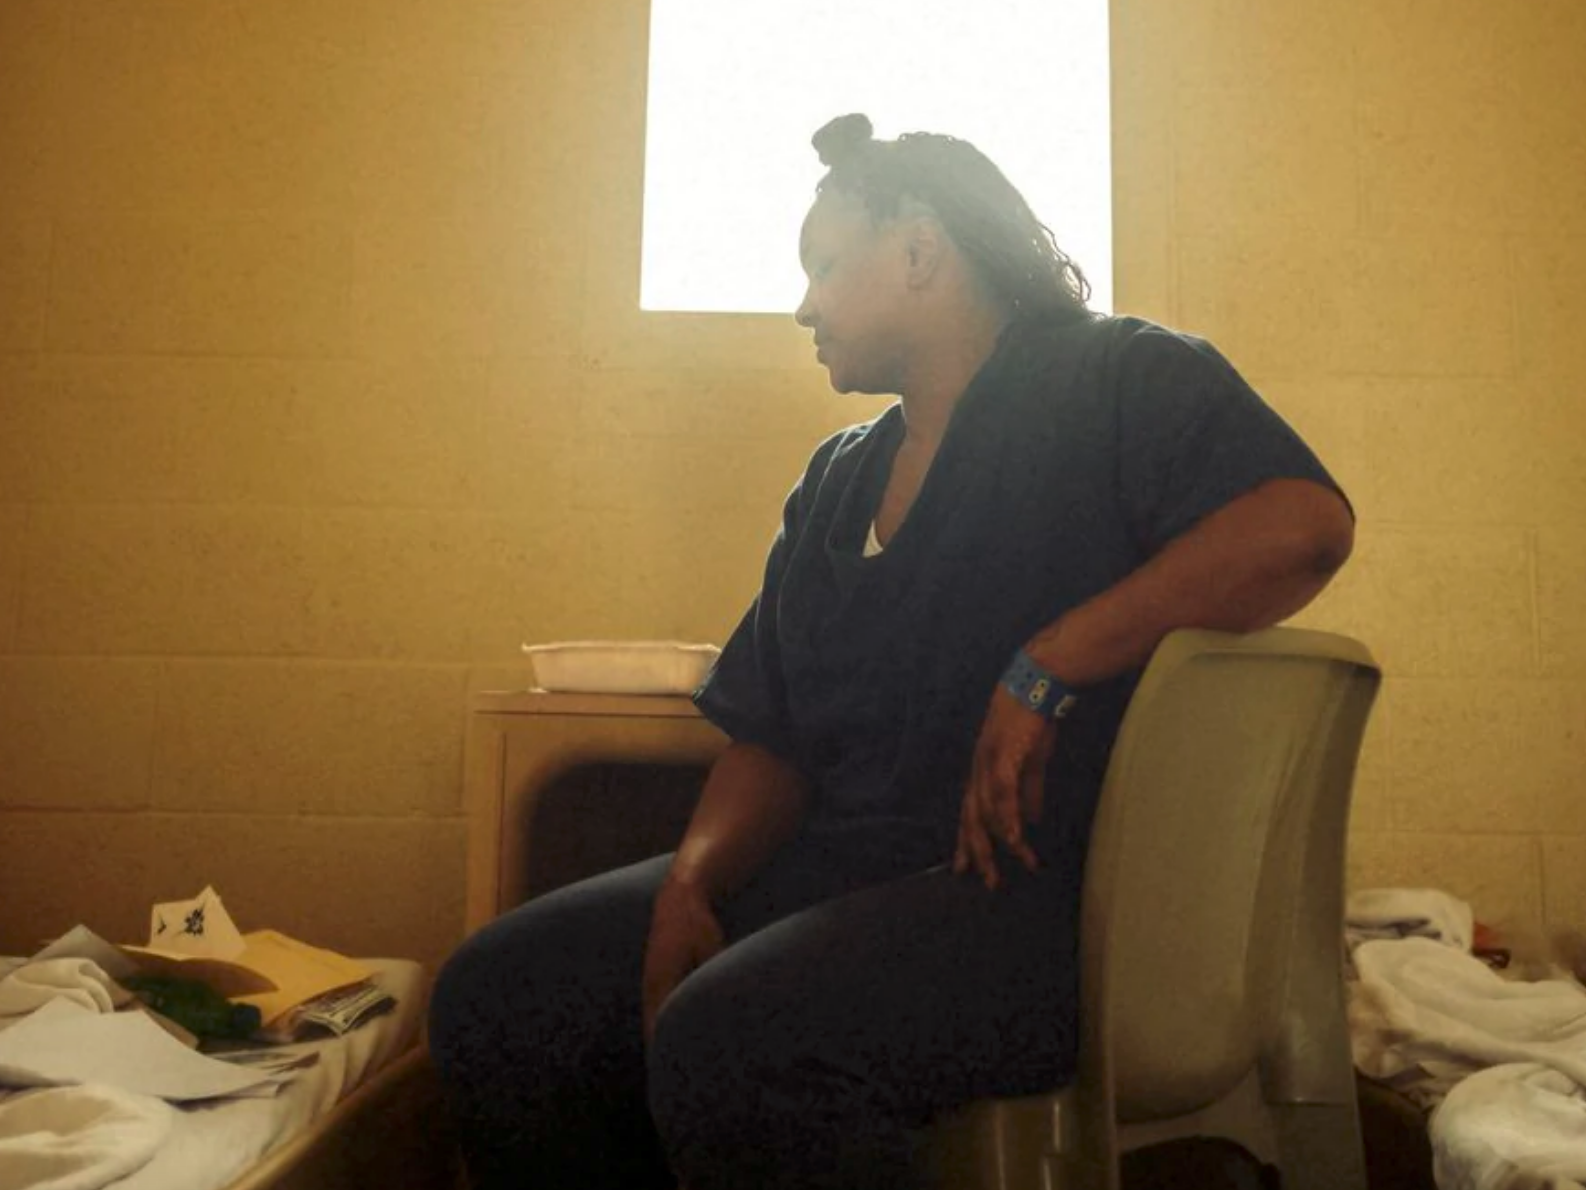 Can We Build a Better Women's Prison?